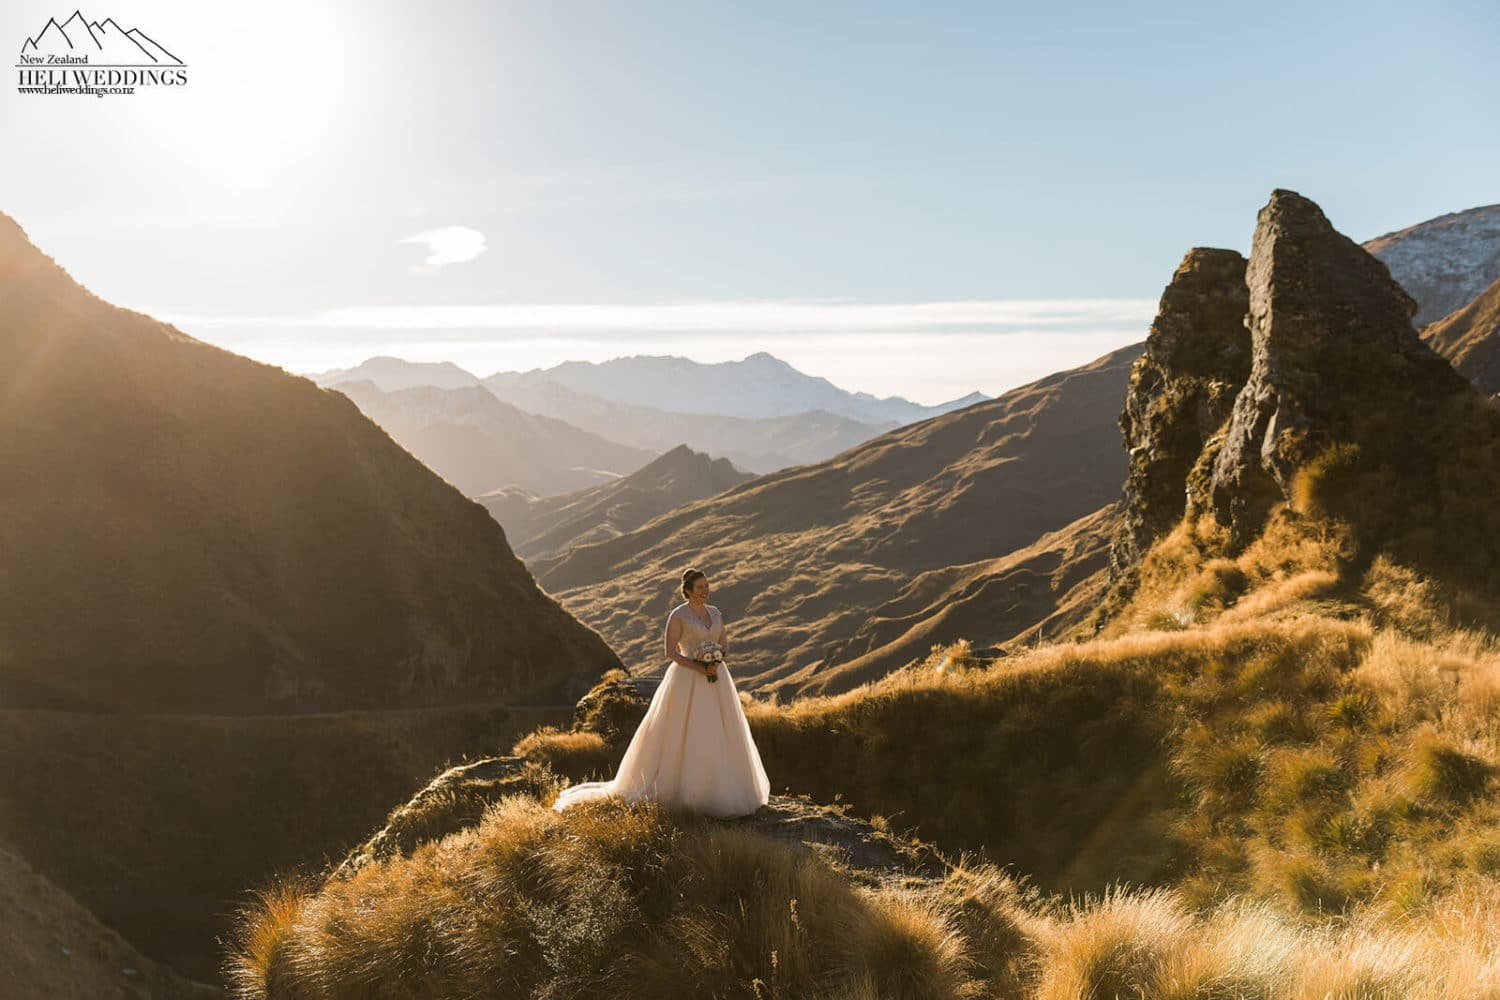 Skippers Canyon wedding, New Zealand destination Wedding